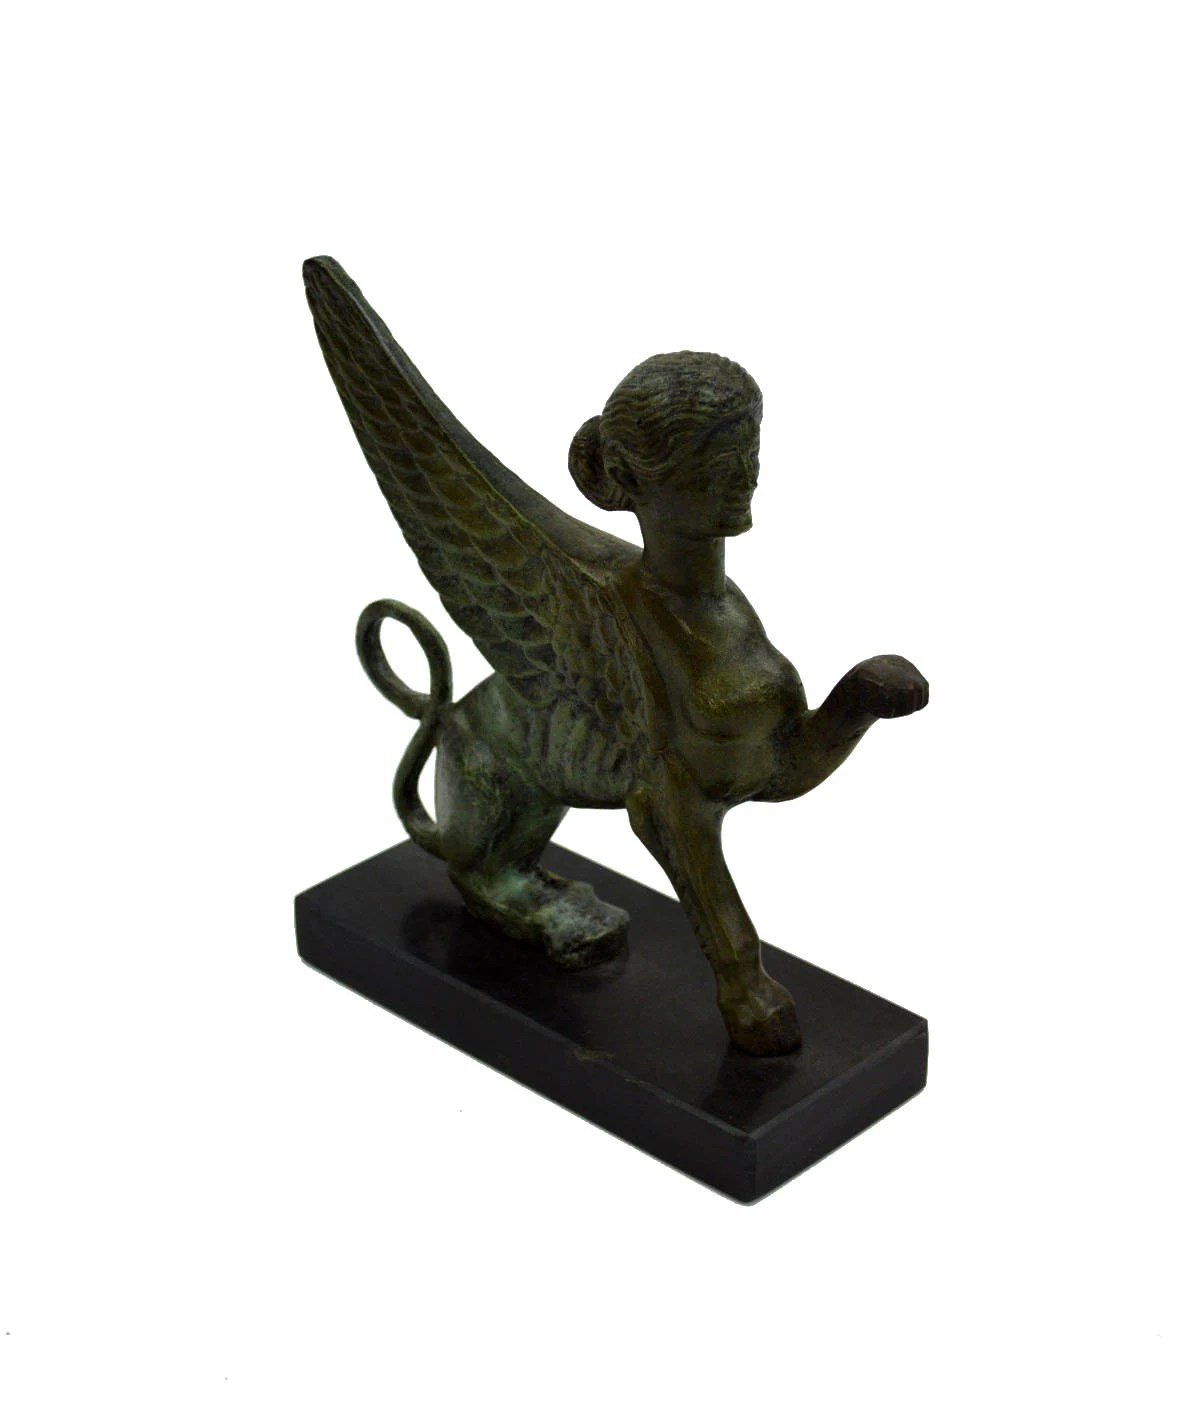 Ancient Greek Statues For Sale Sphinx Bronze Statue Ancient Greek Marble Based Aged Sculpture